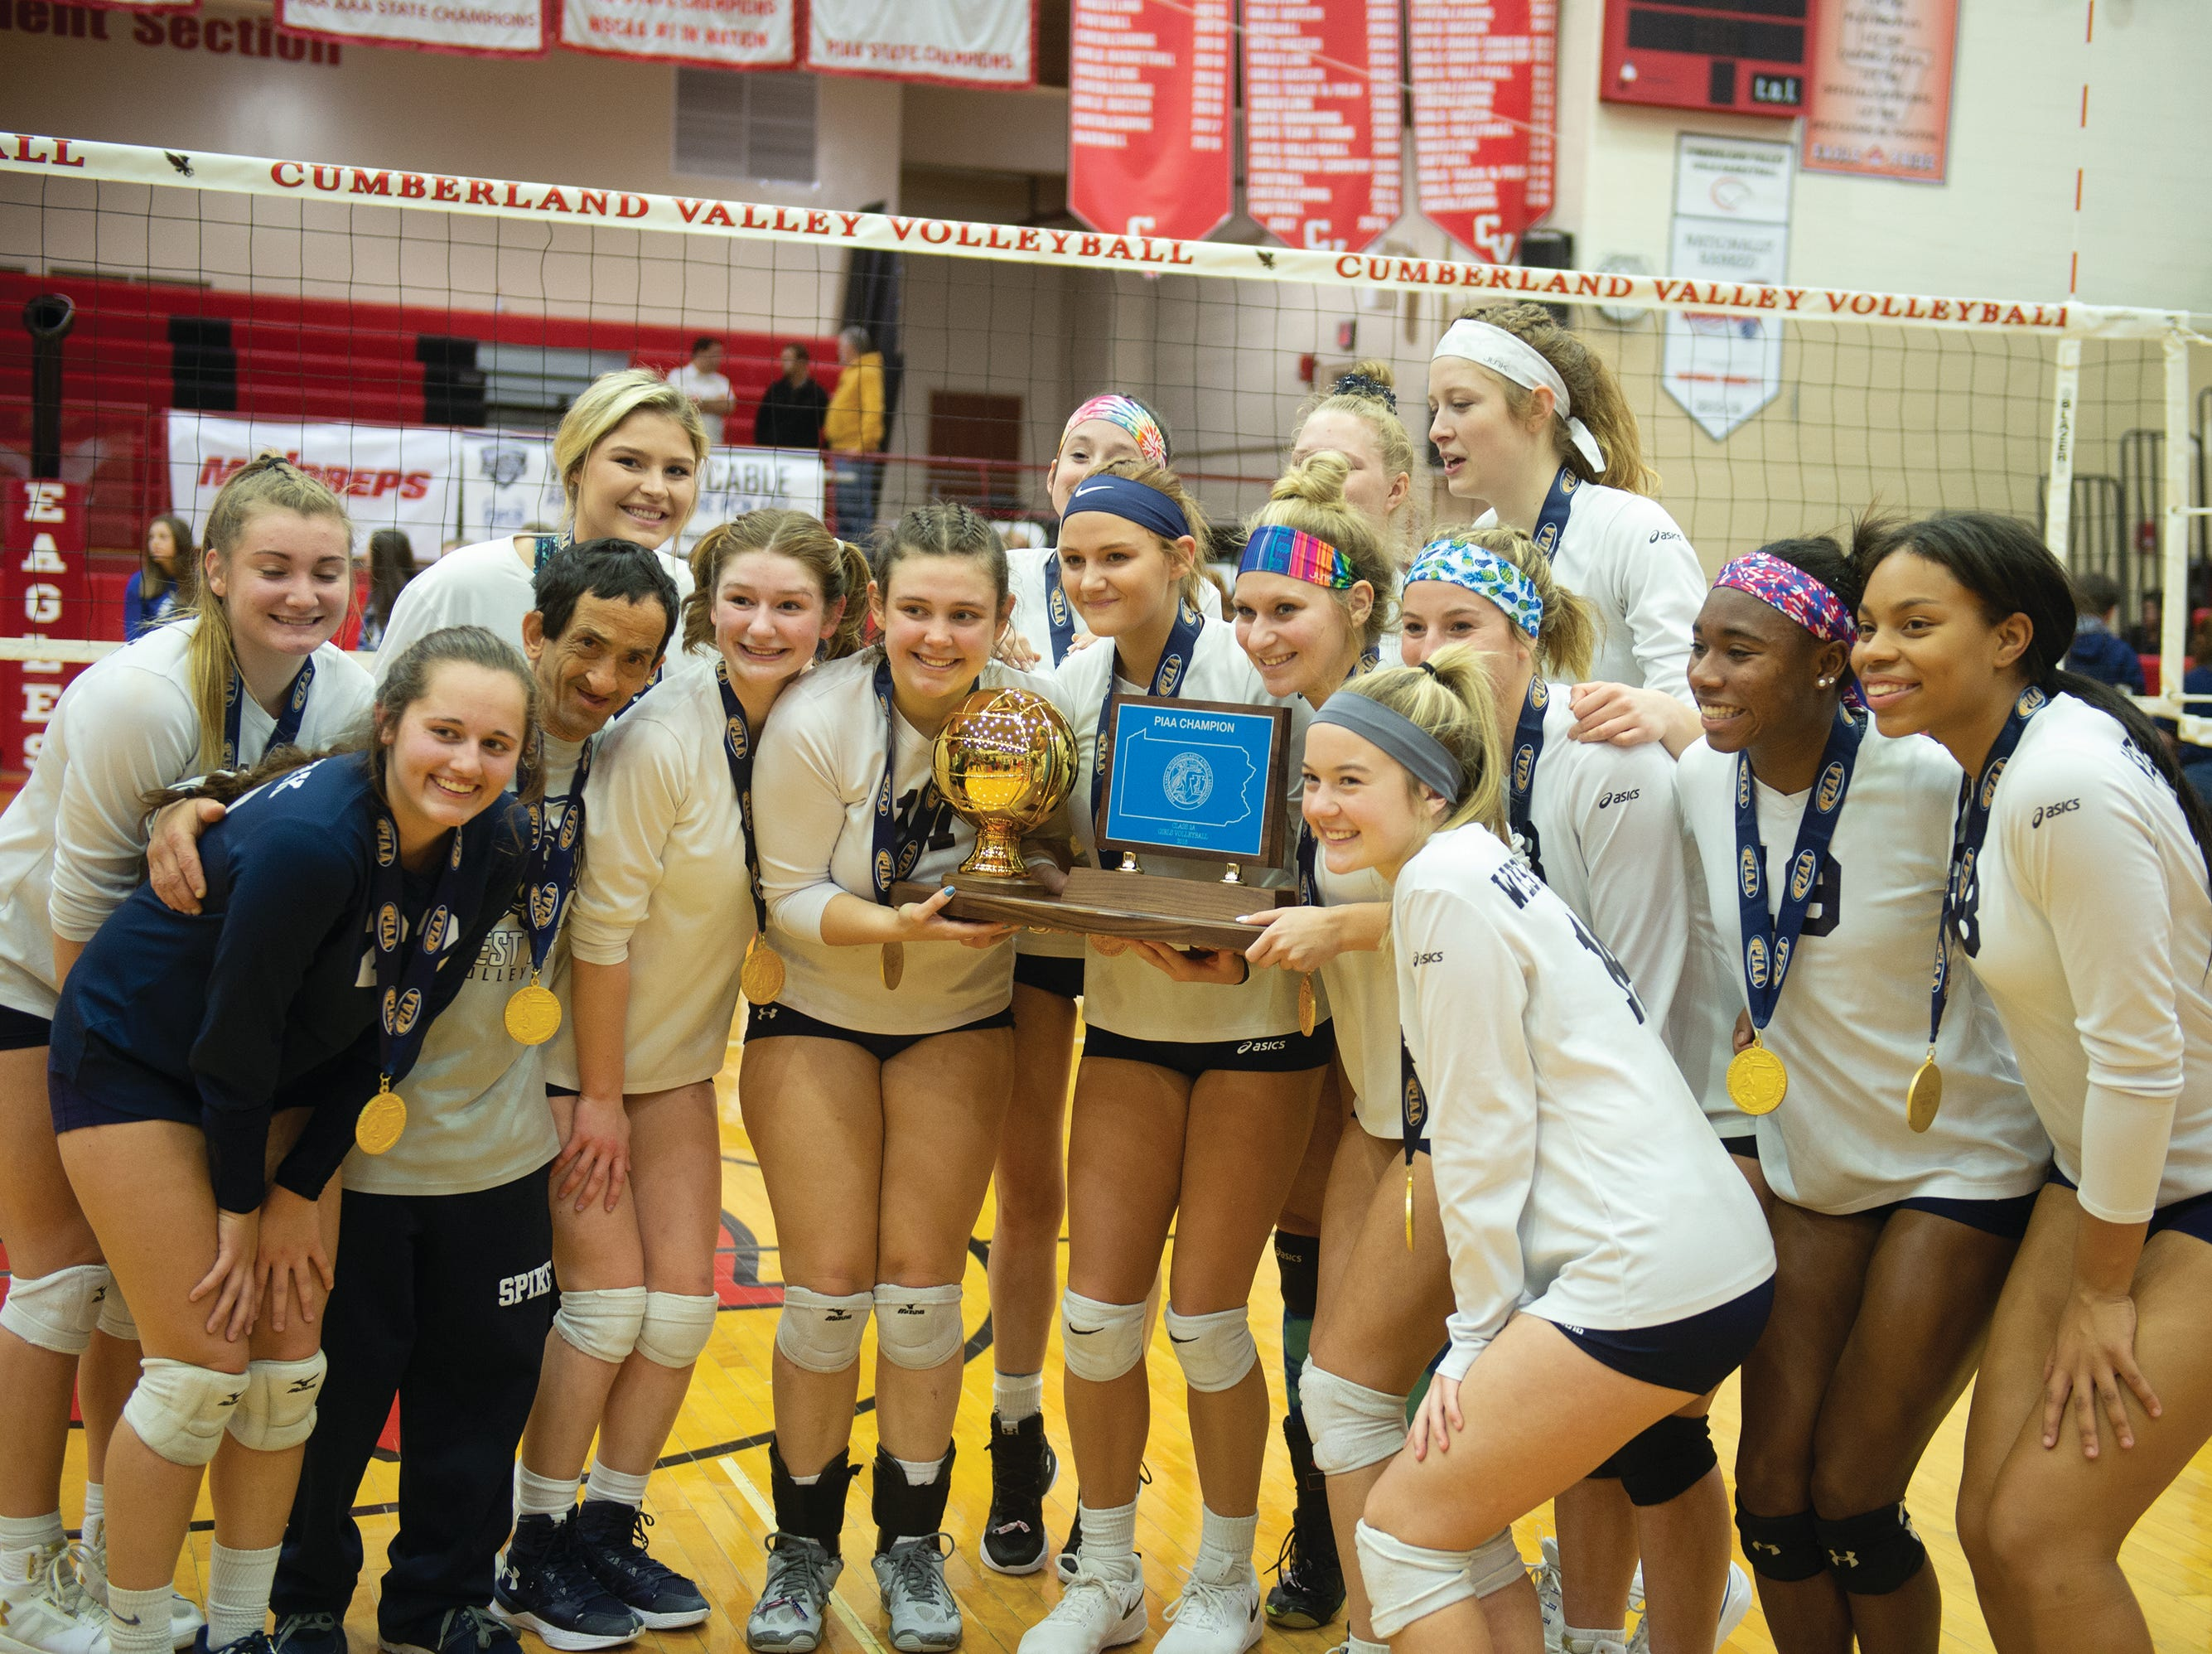 West York girls' volleyball team shows off its PIAA Class 3A championship trophy after defeating Warren on Saturday.